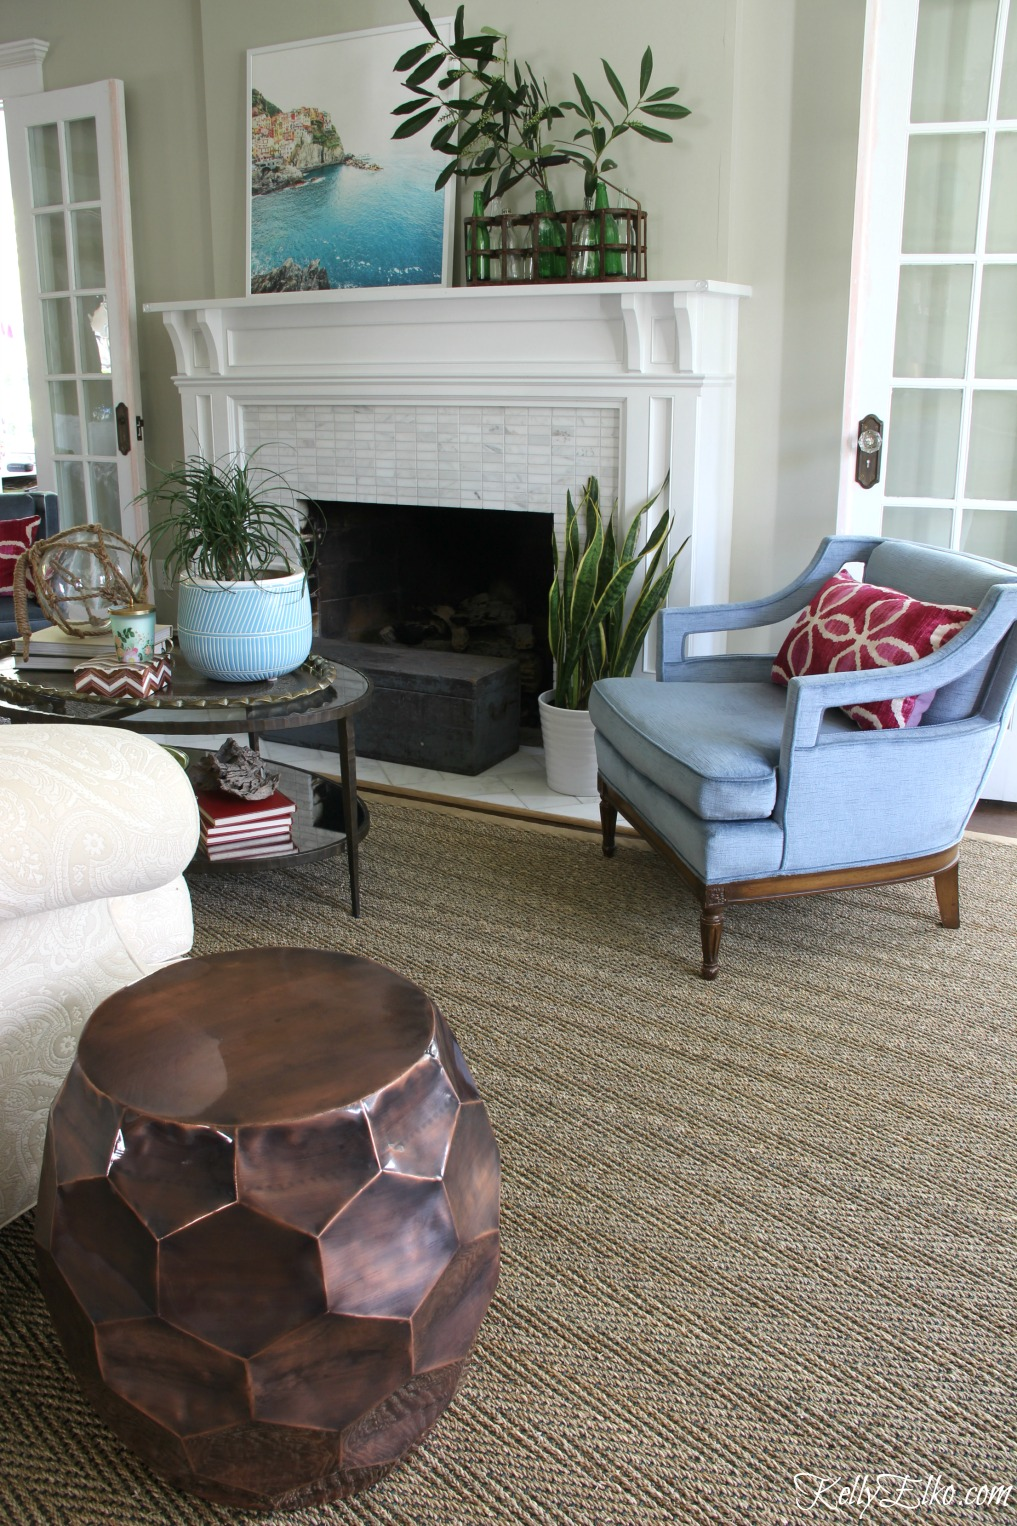 Beautiful living room in shades of blue - love the seagrass rug and vintage blue velvet chairs kellyelko.com